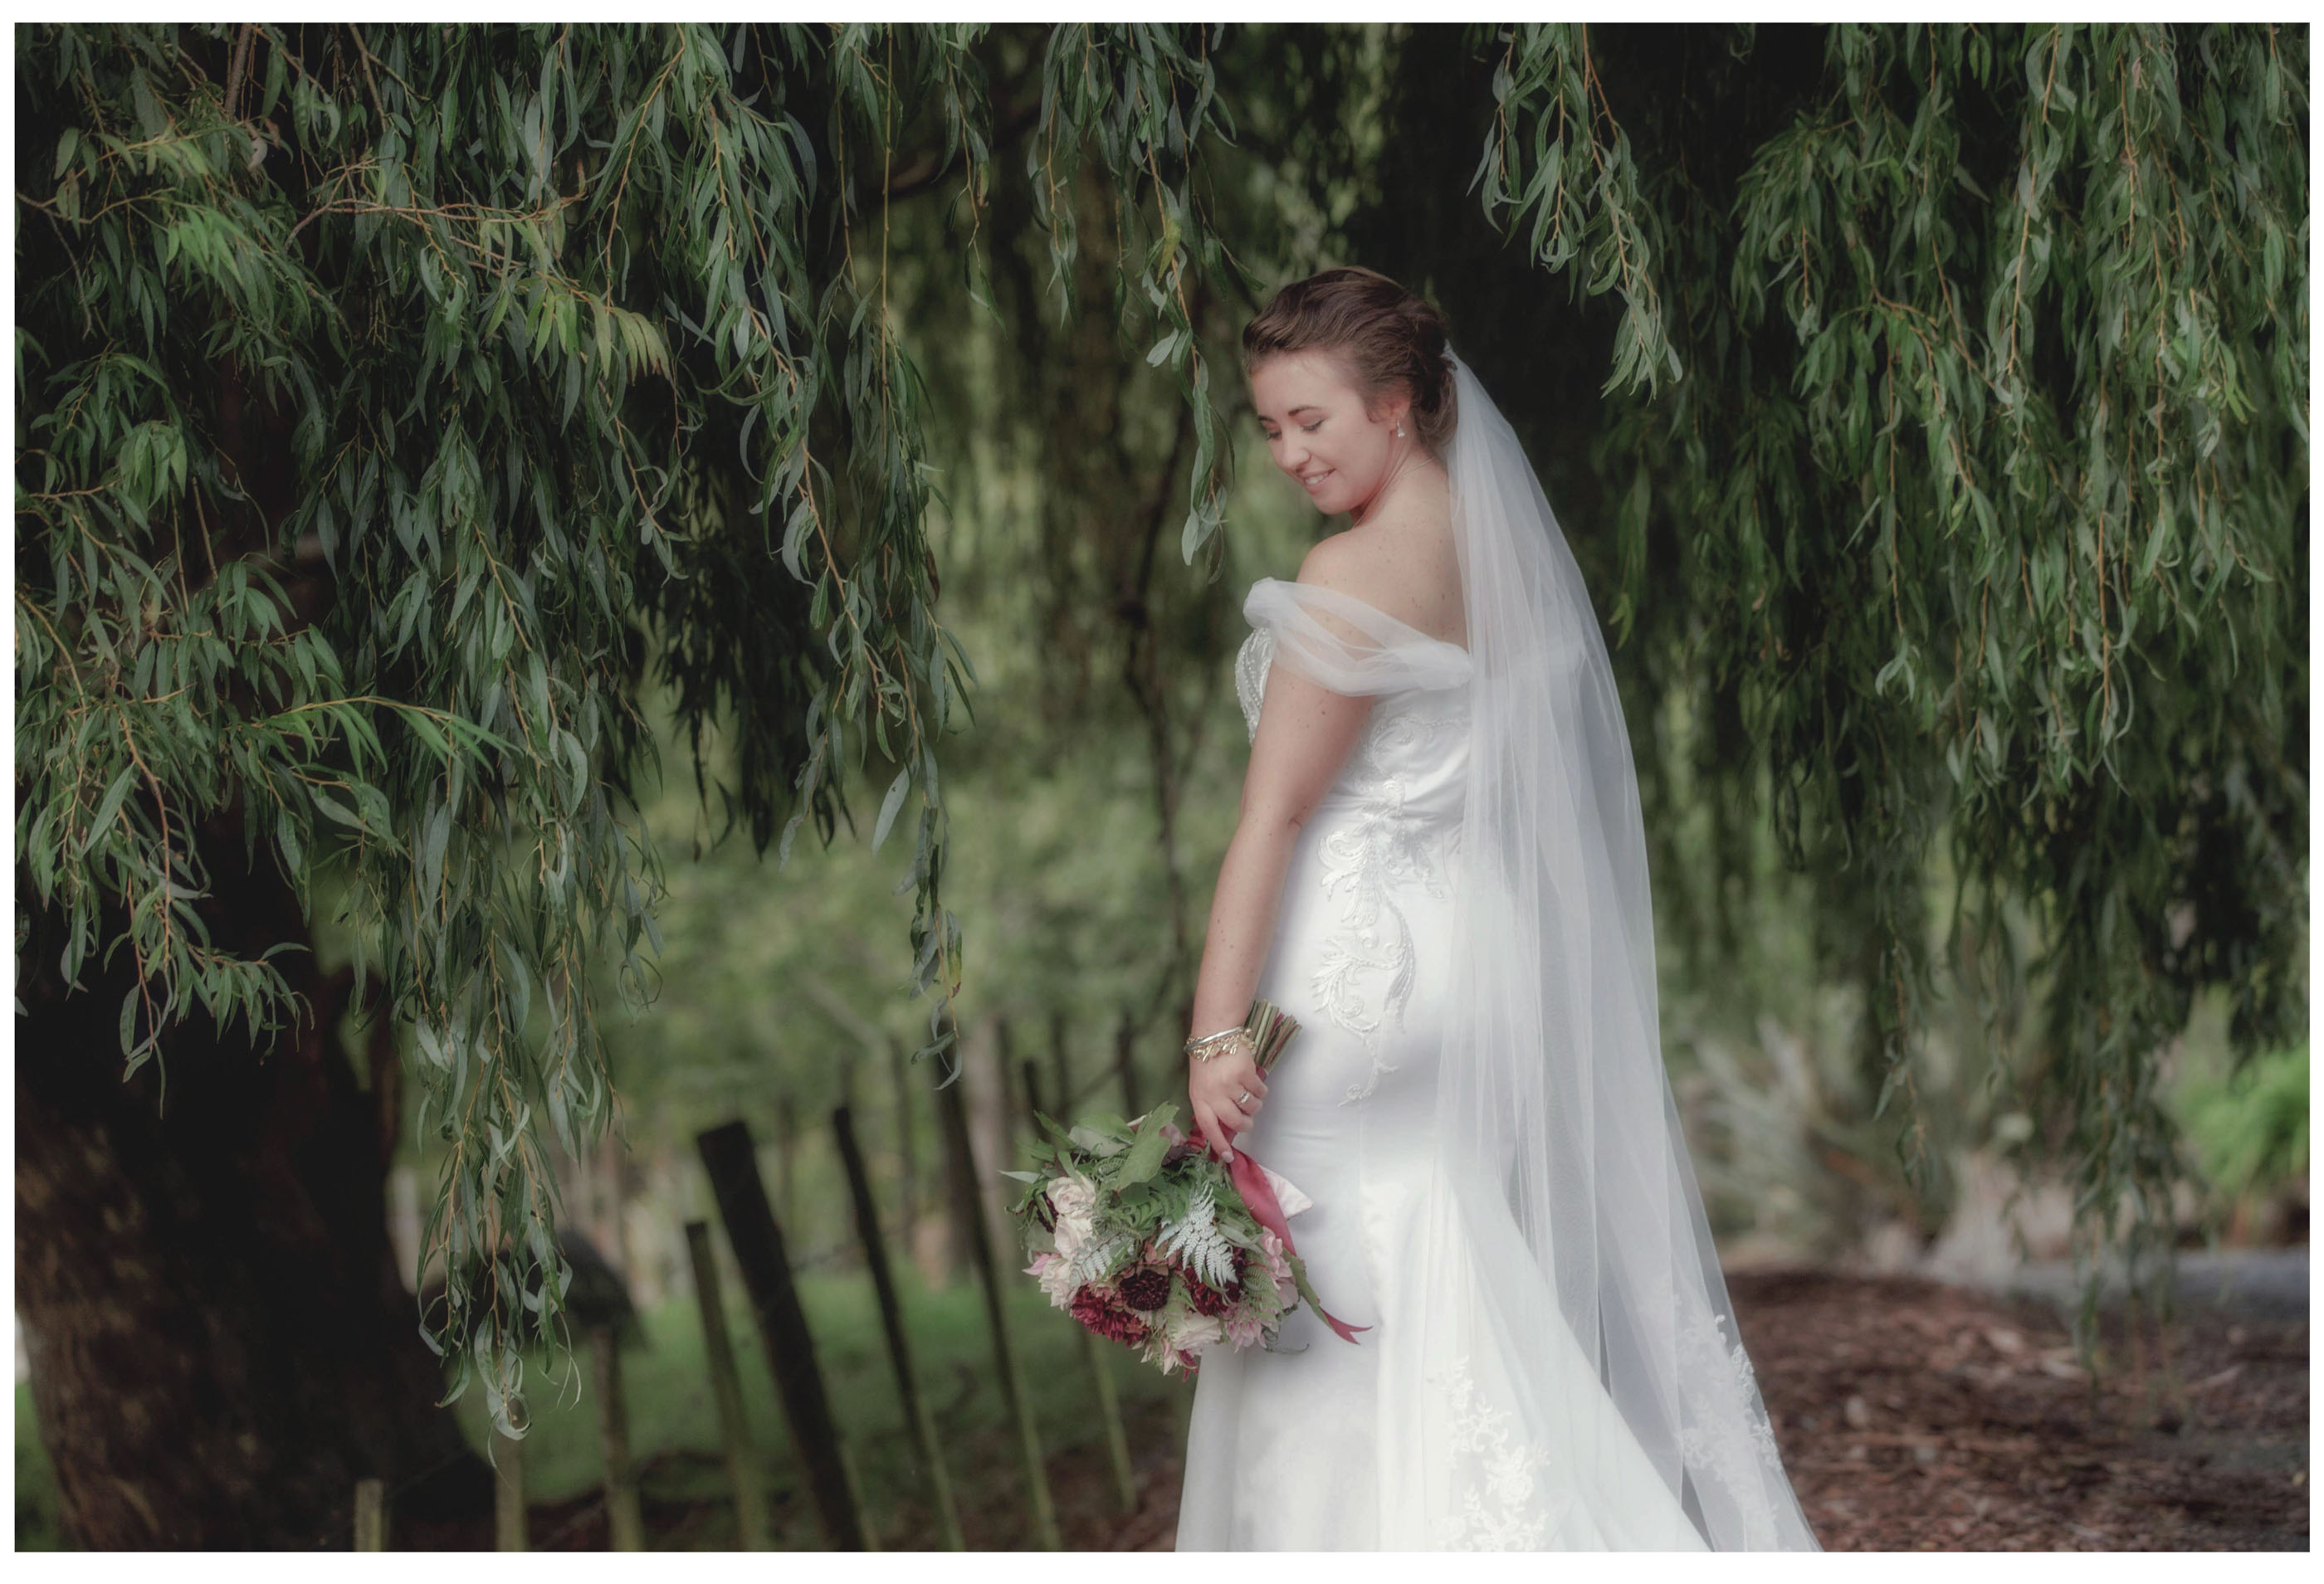 Bride in white wedding dress with flowers under willow tree in Kumeu